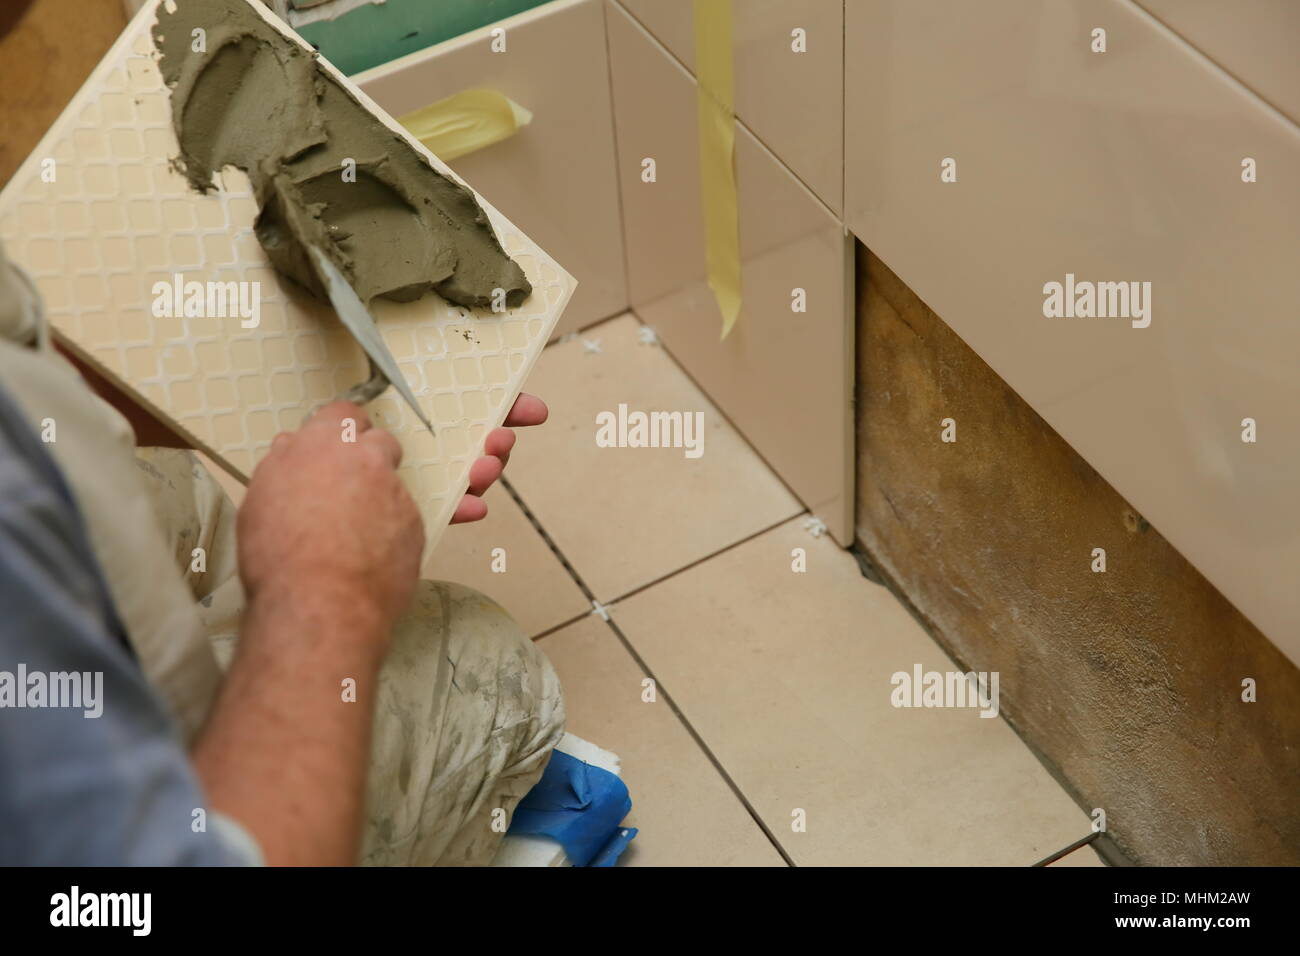 Laying Ceramic Tiles In The Bathroom Requires A Lot Of Experience